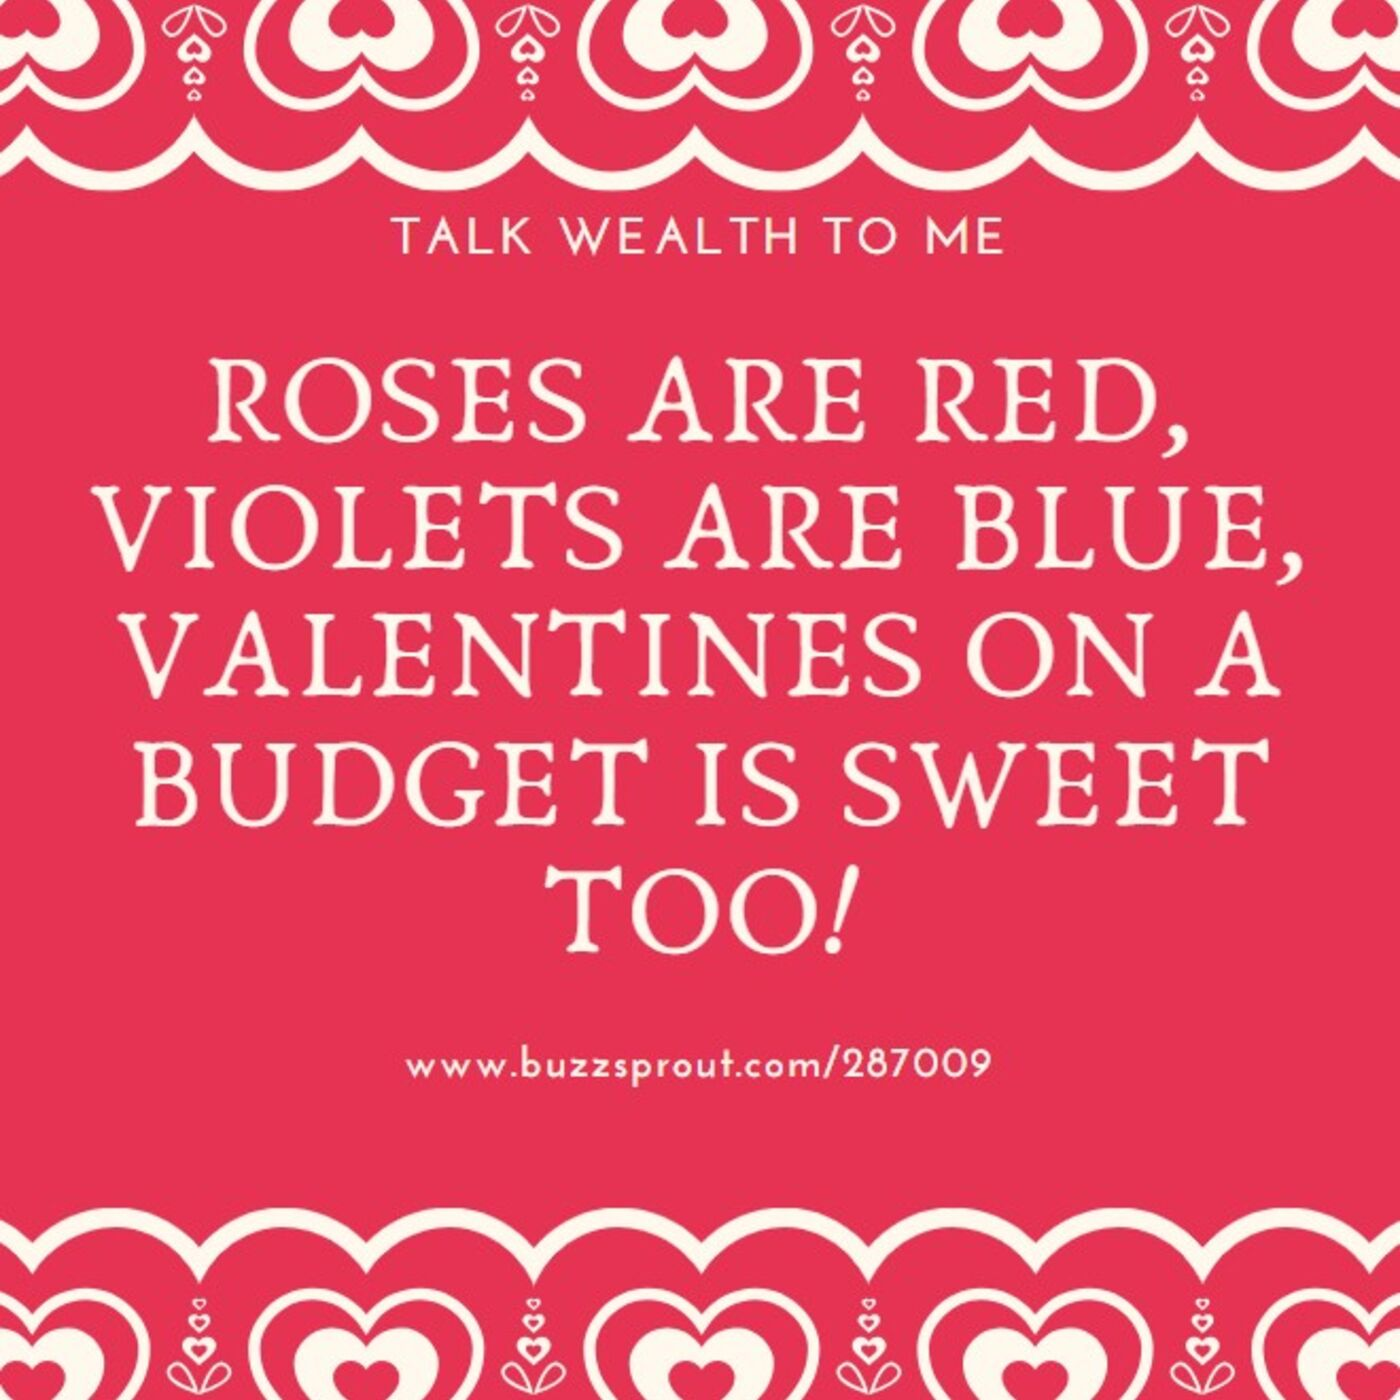 #070 Roses are Red, Violets are Blue, Valentines on a Budget is Sweet Too